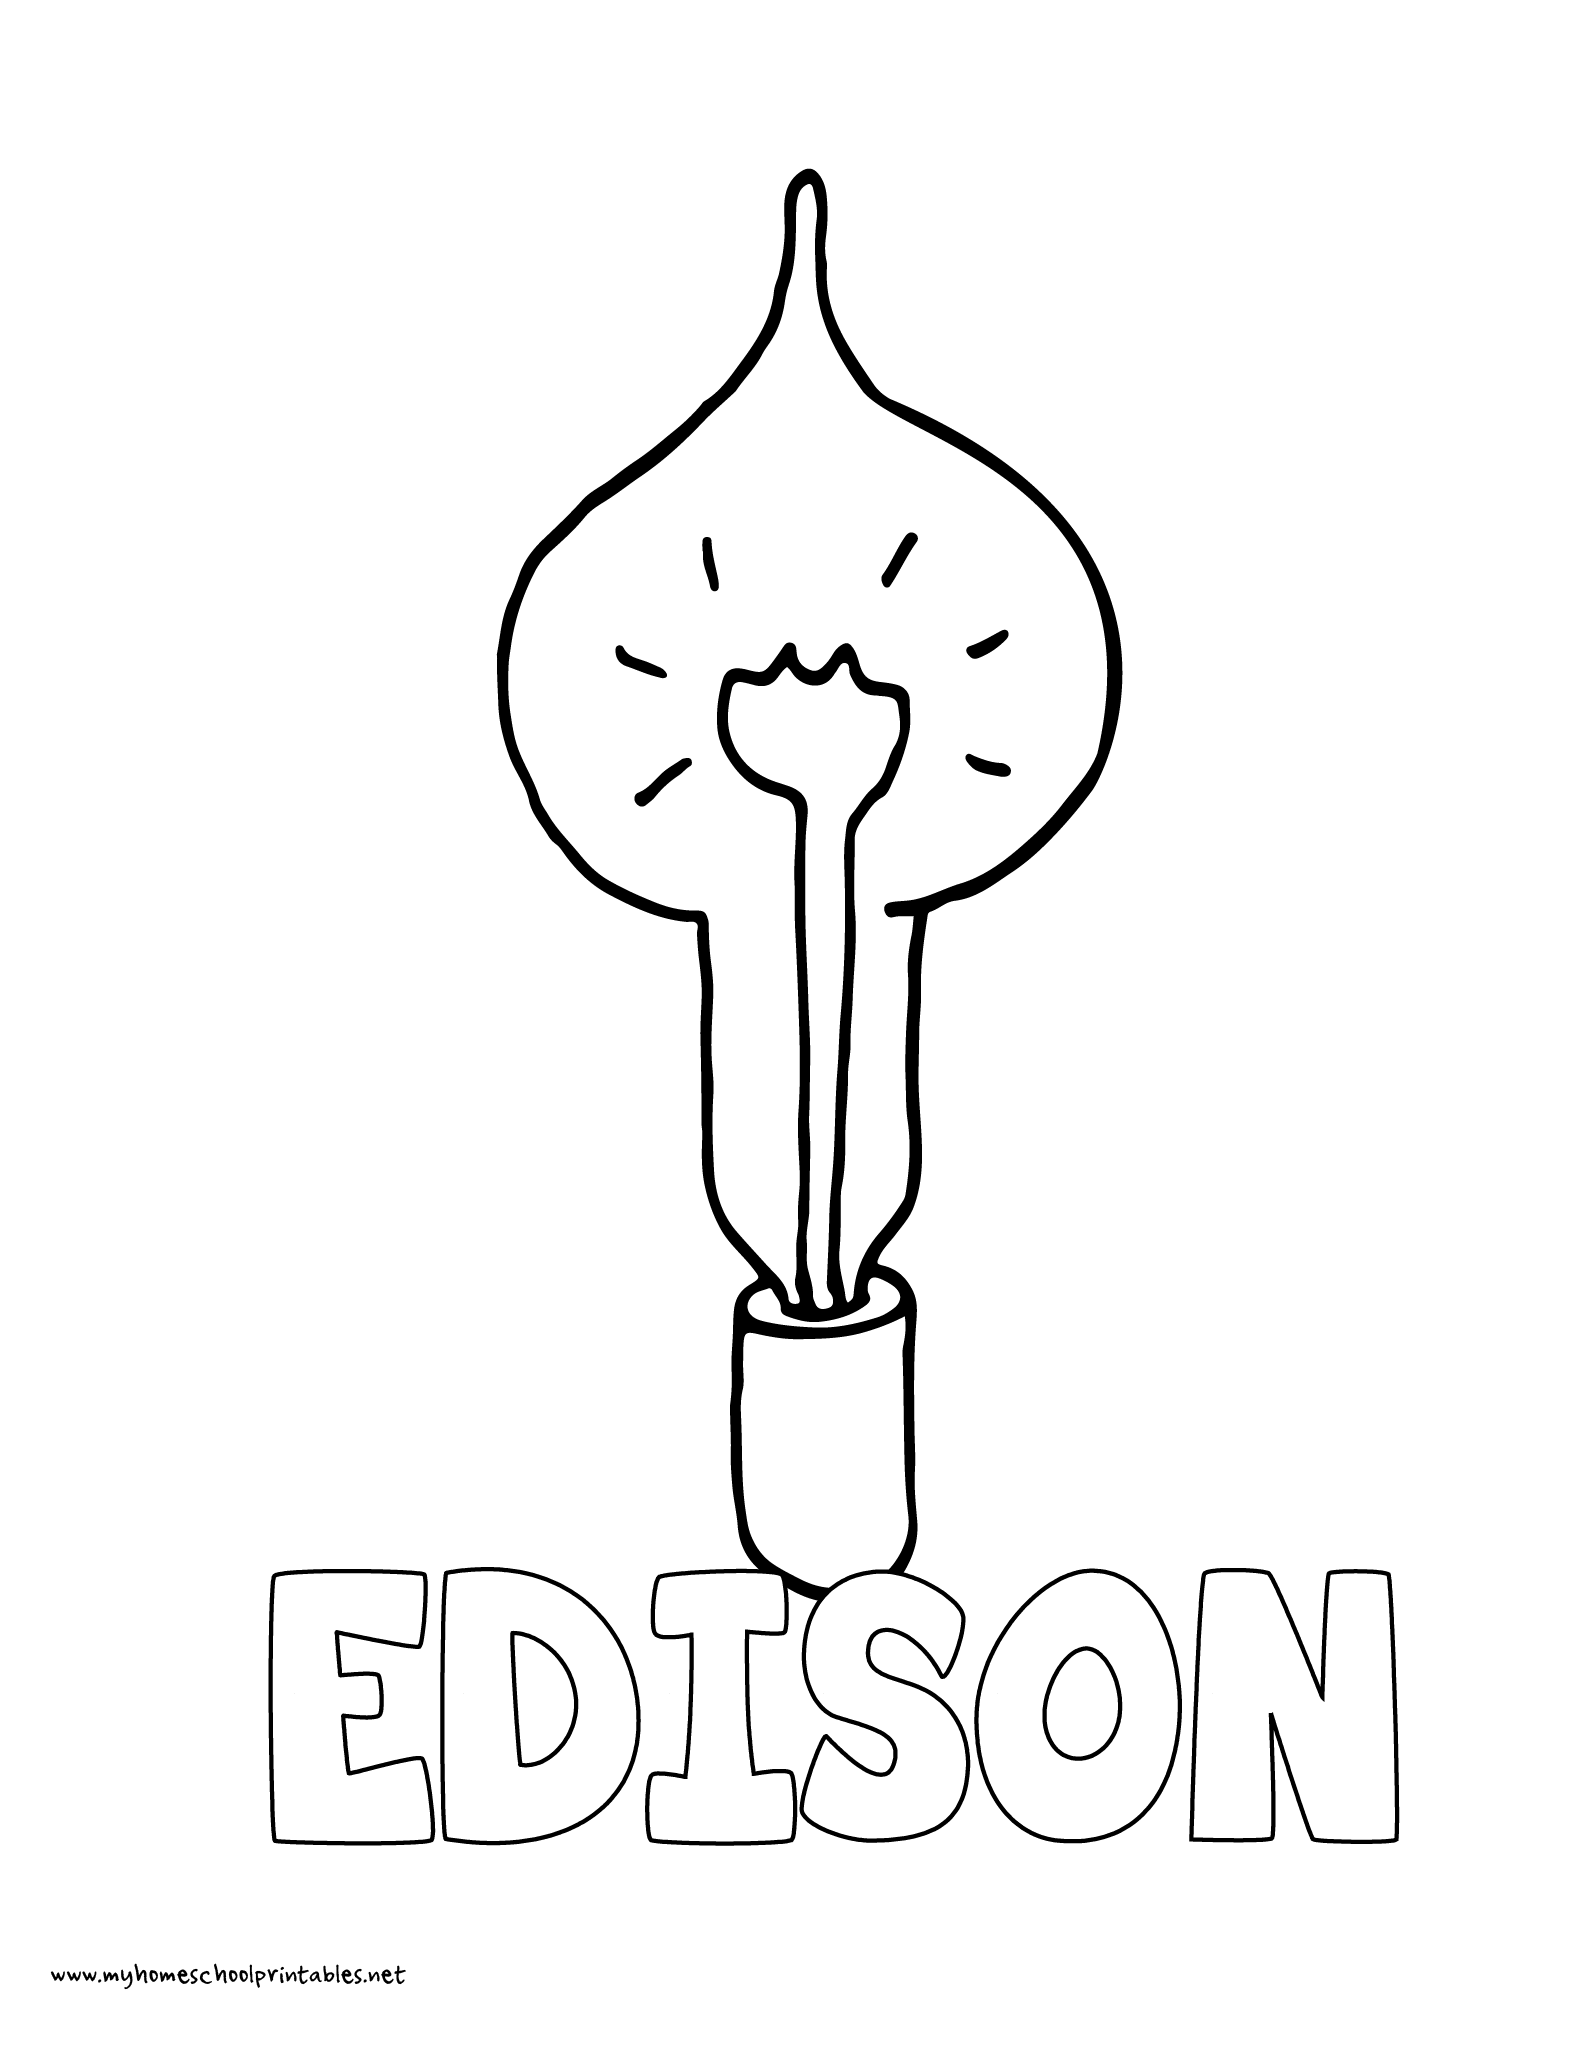 History Coloring Pages – Volume 4 | Edison inventions ...